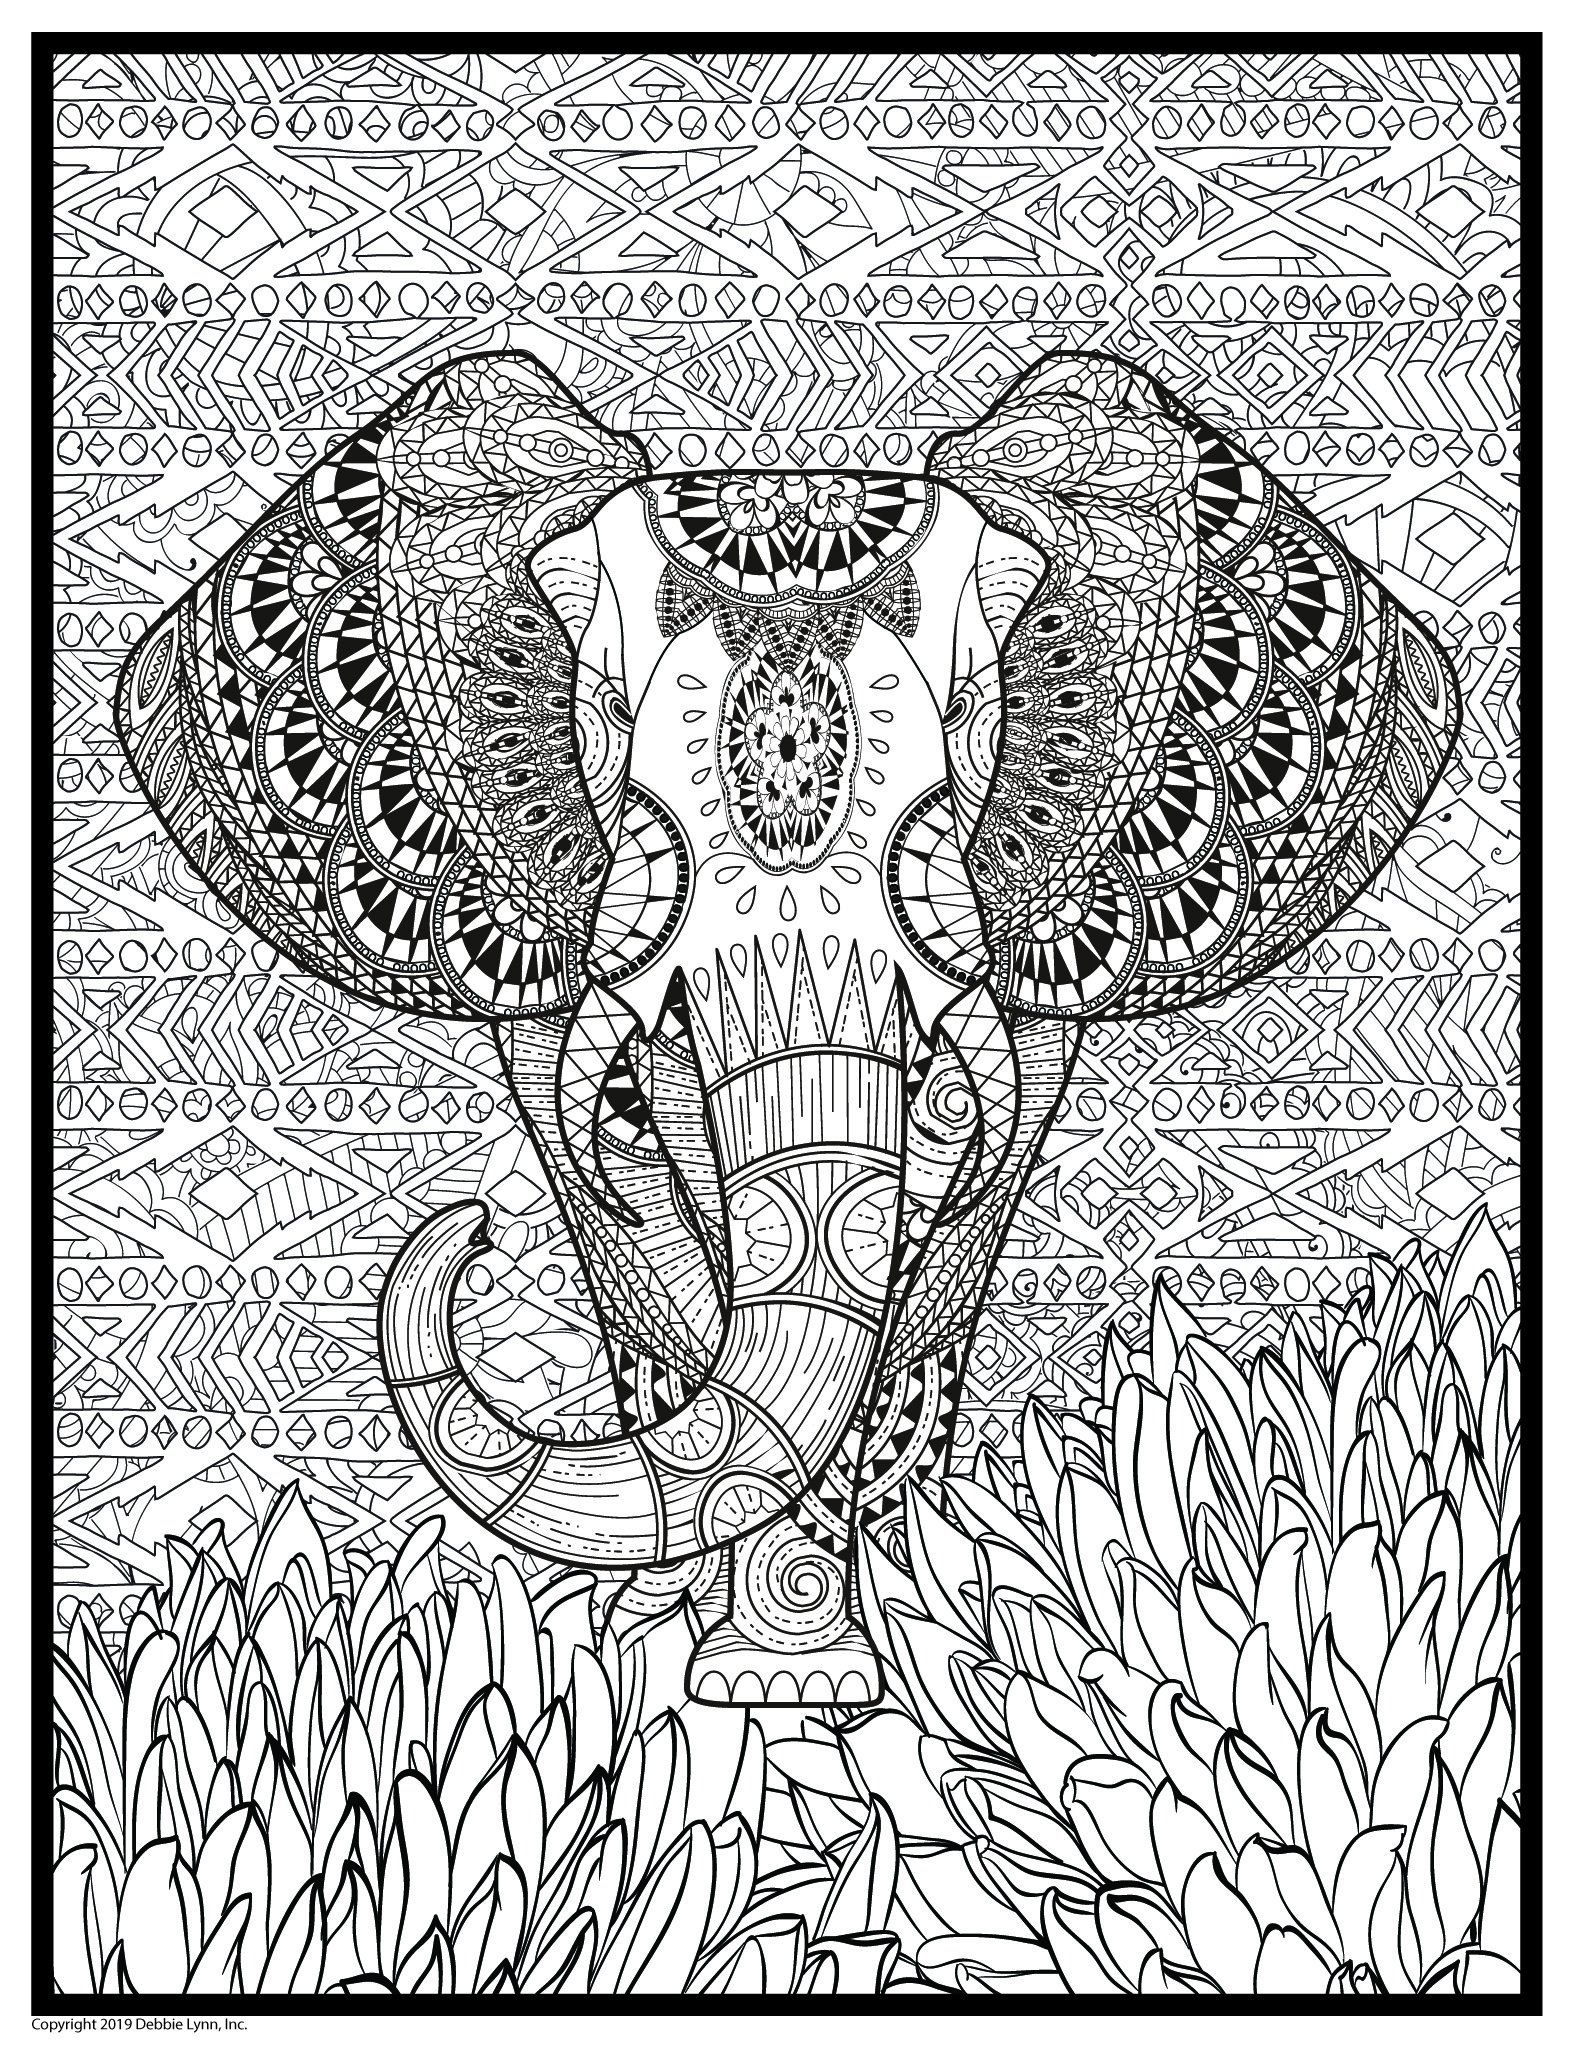 Super Huge 48 X 63 Coloring Poster Coloring Posters Animal Coloring Pages Animal Coloring Books